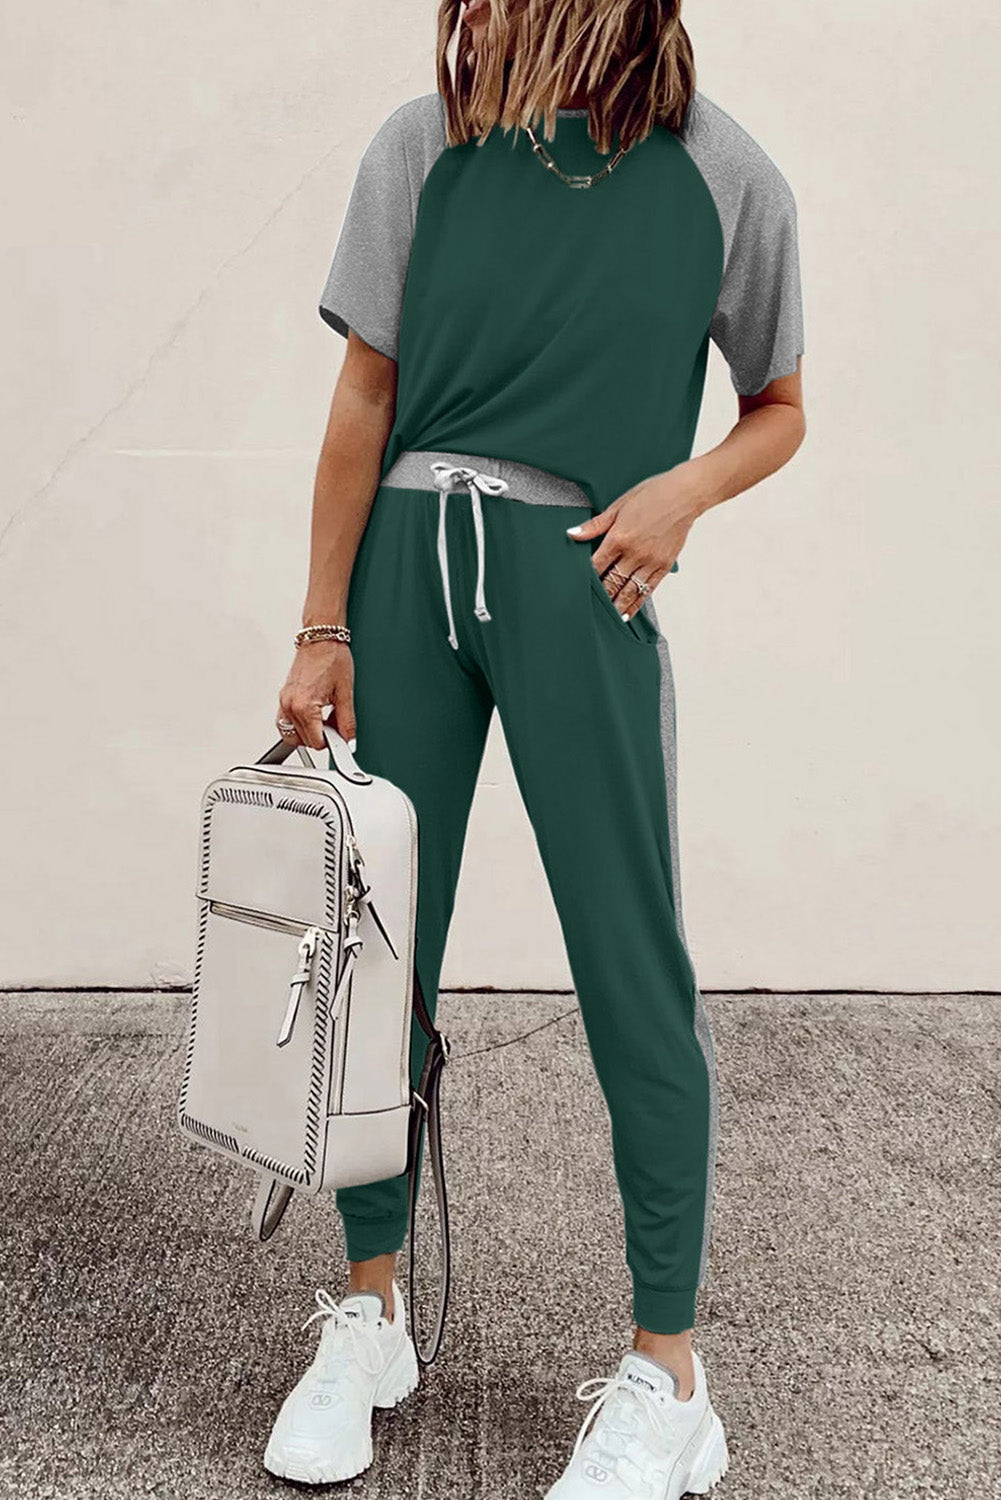 Green Colorblock Short Sleeves and Joggers Sports Set Sports Wear Discount Designer Fashion Clothes Shoes Bags Women Men Kids Children Black Owned Business